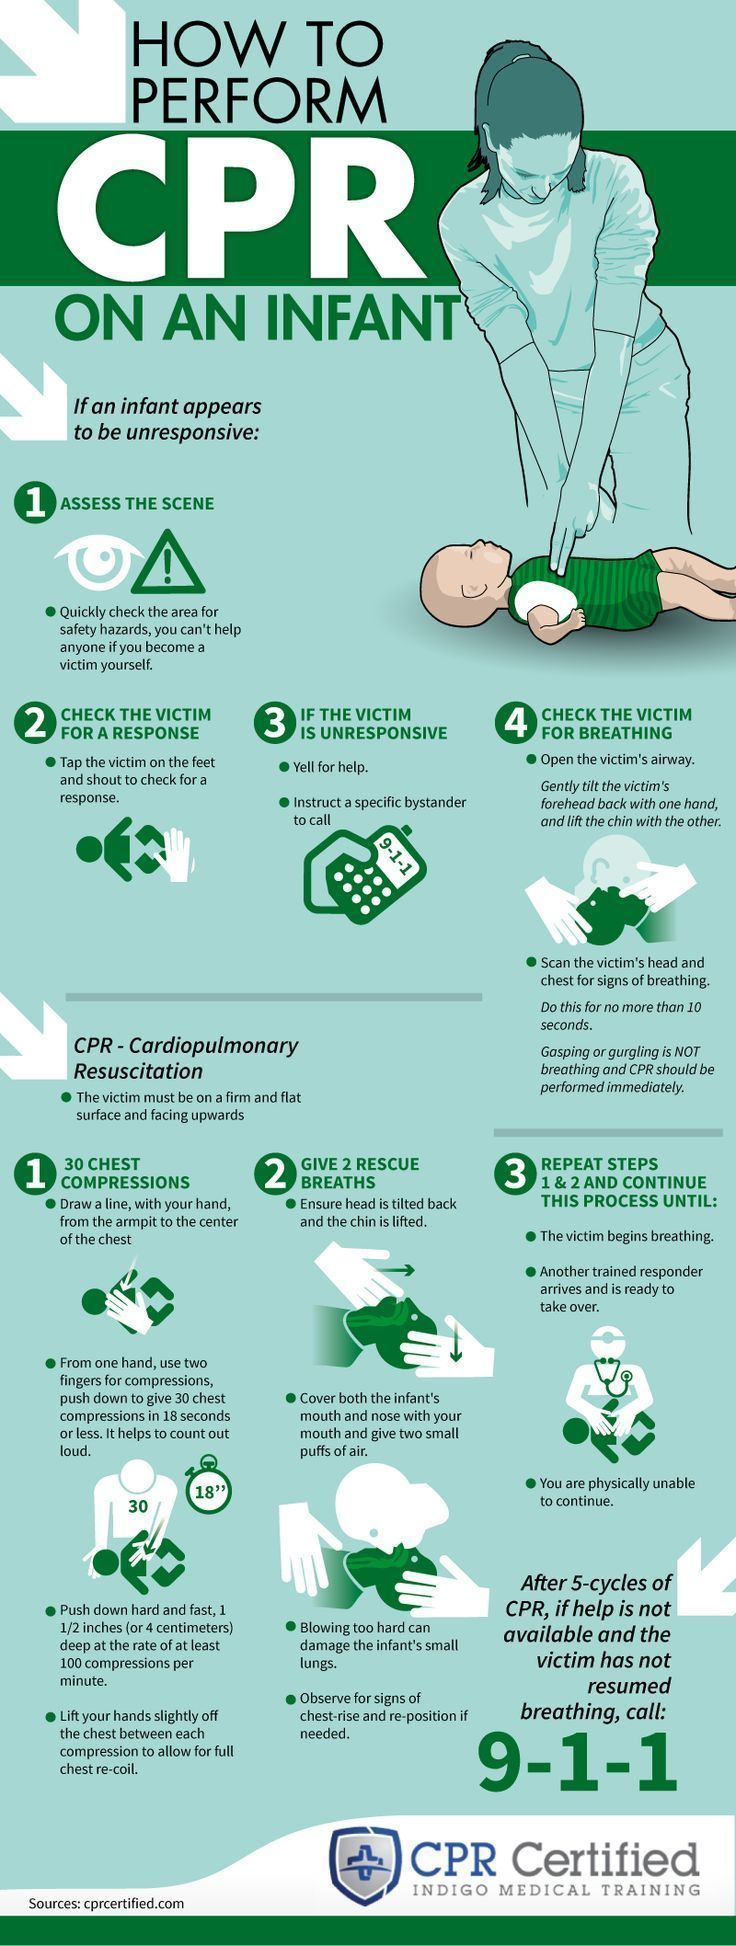 How to Perform CPR on an Infant Infographic How to